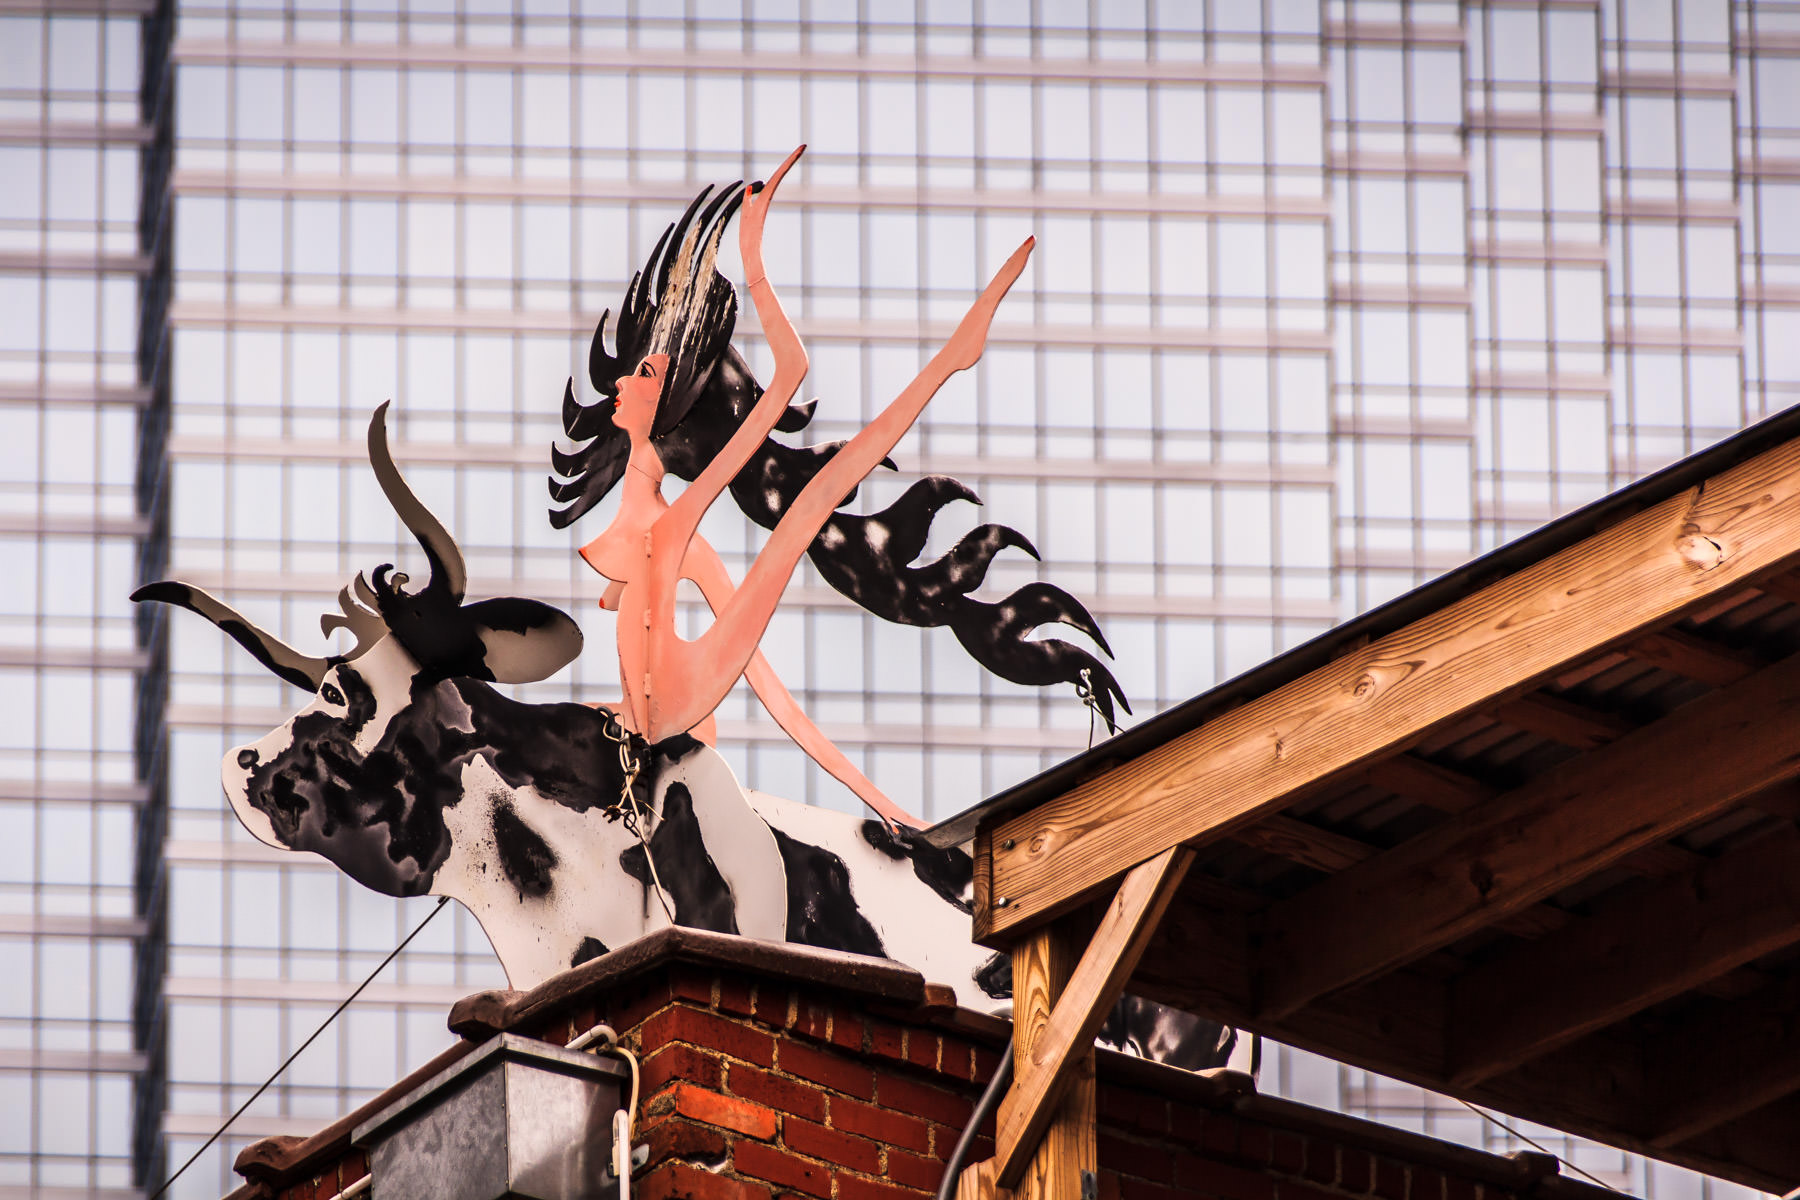 This sculpture was spotted atop the offices of SMR Landscape Architects in Downtown Dallas.